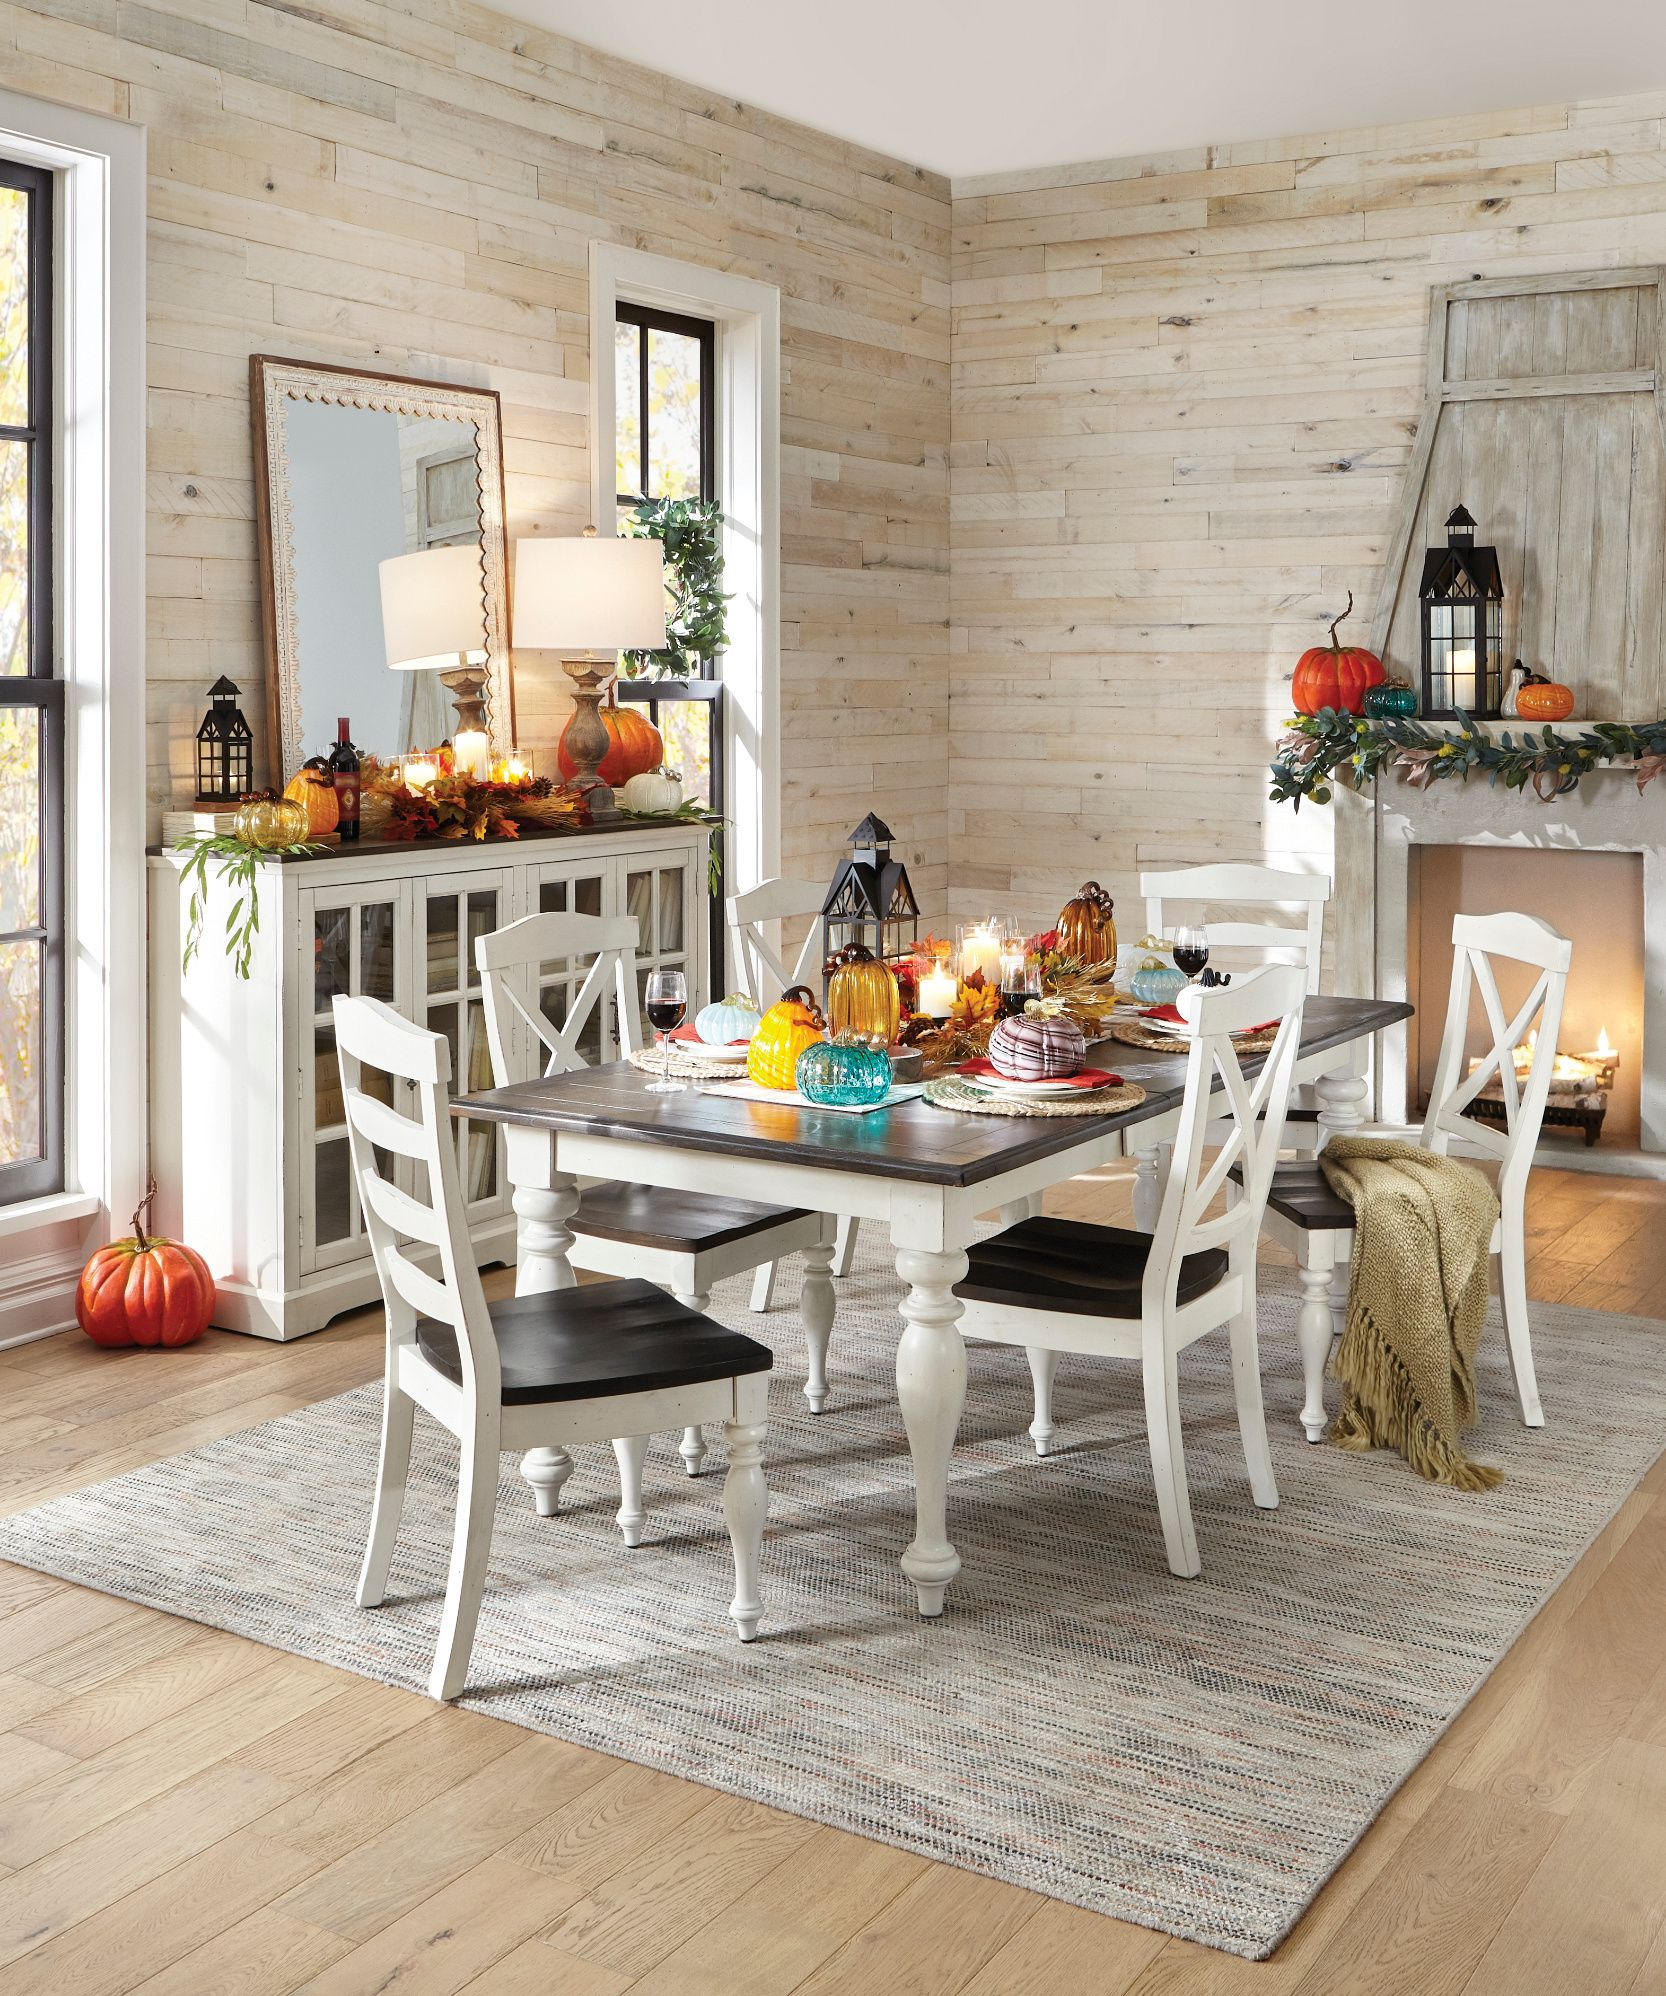 If you love farmhouse style this sturdy dining room set